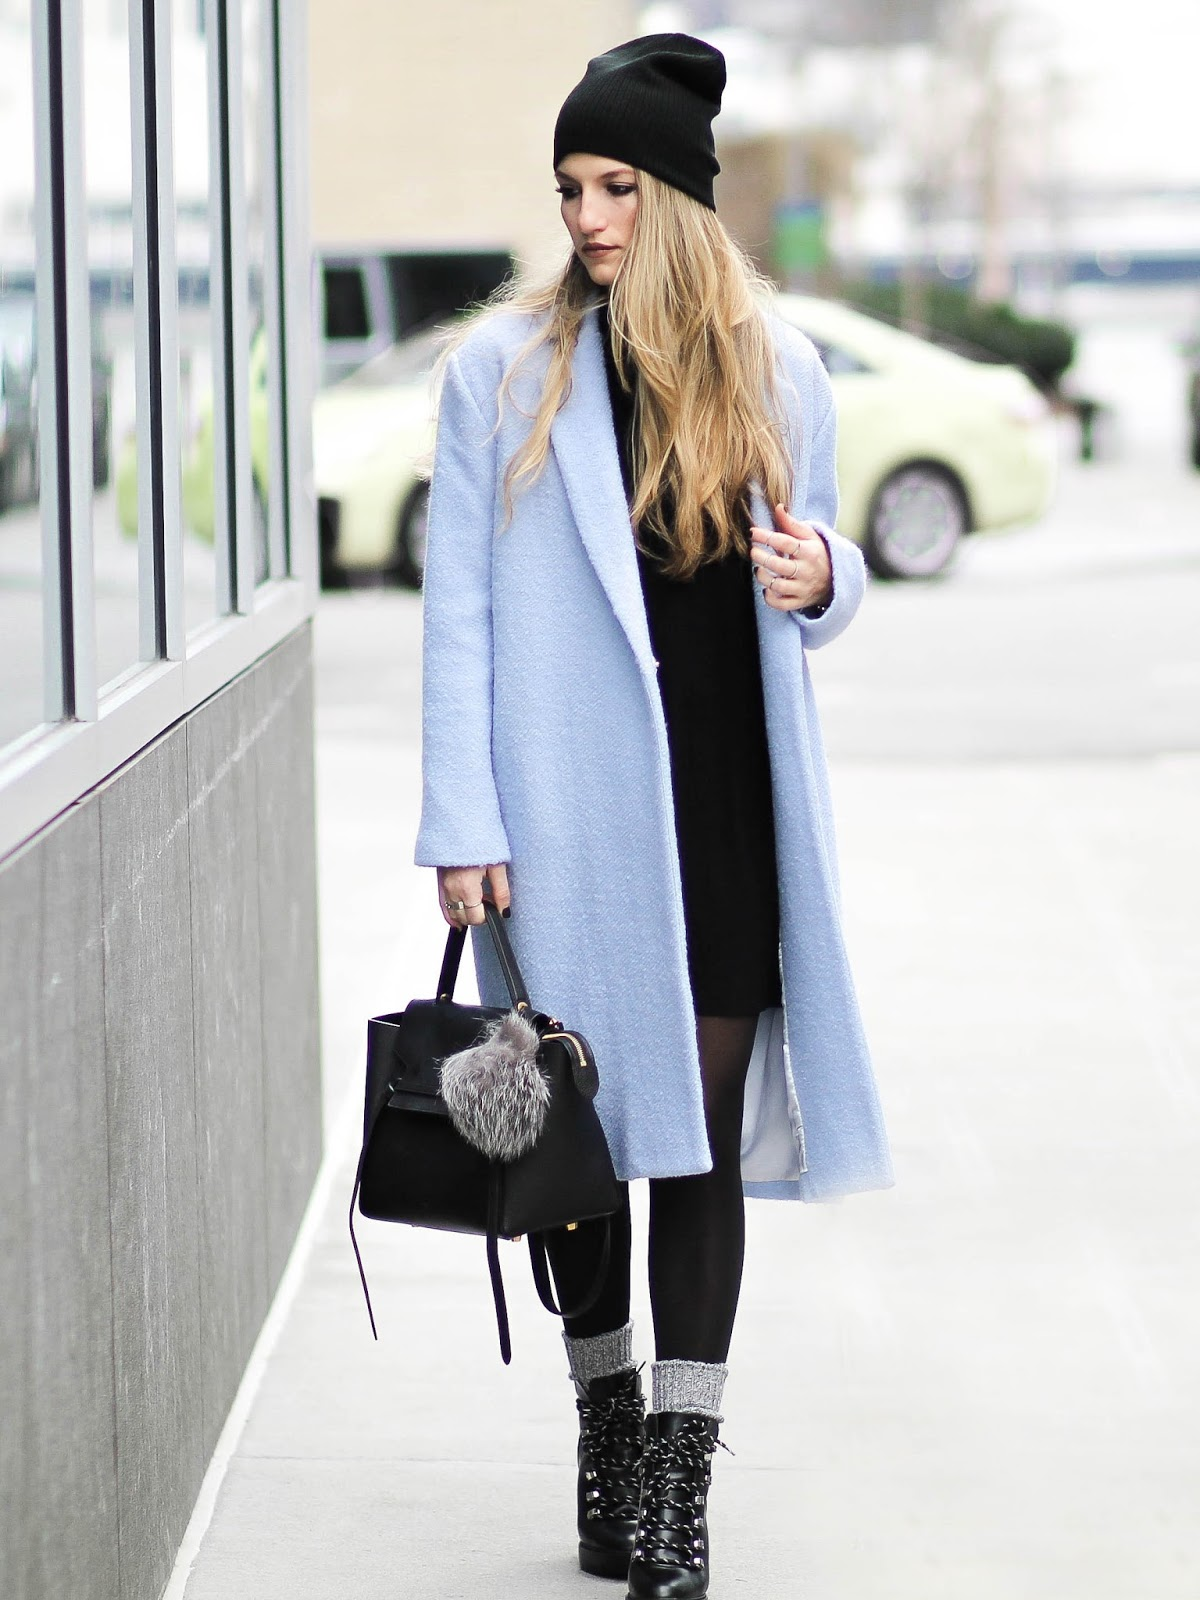 winter style, dressed for dreams